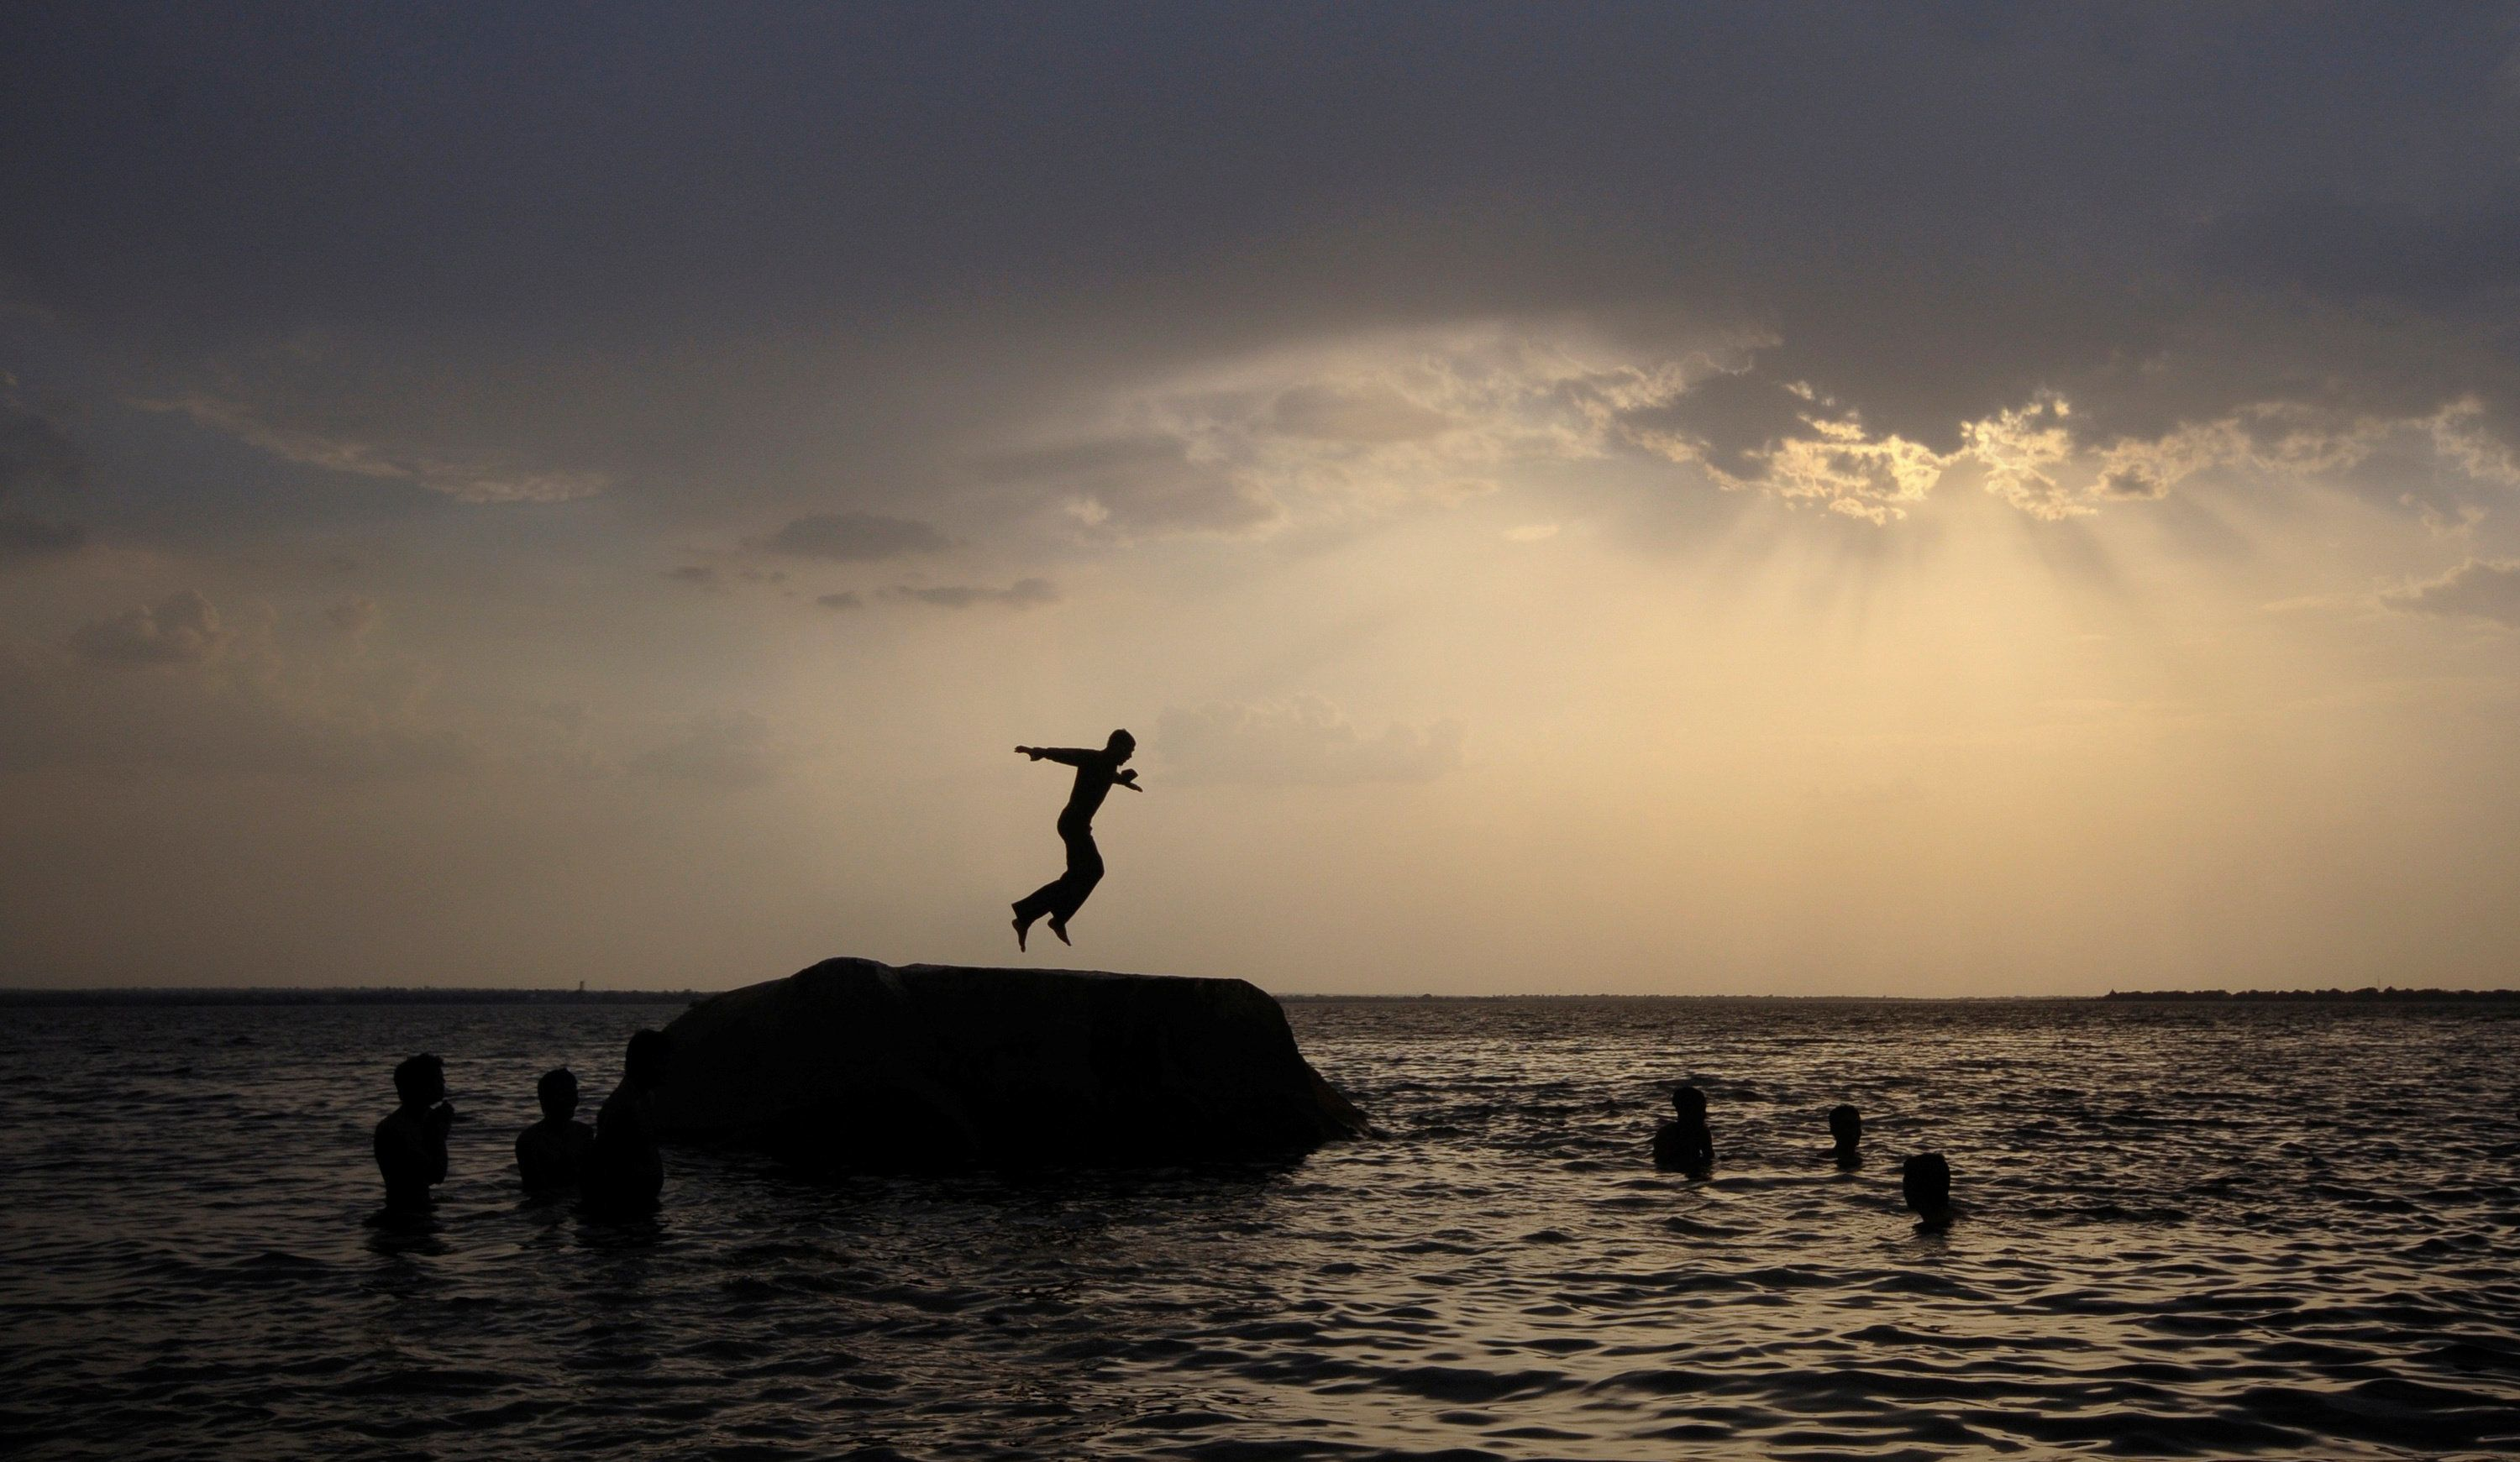 A boy prepares to jump off a rock into the waters of the Osman Sagar Lake near the southern Indian city of Hyderabad May 29, 2011. To match Insight HEALTH-SUPERBUGS/INDIA REUTERS/Krishnendu Halder/File Photo